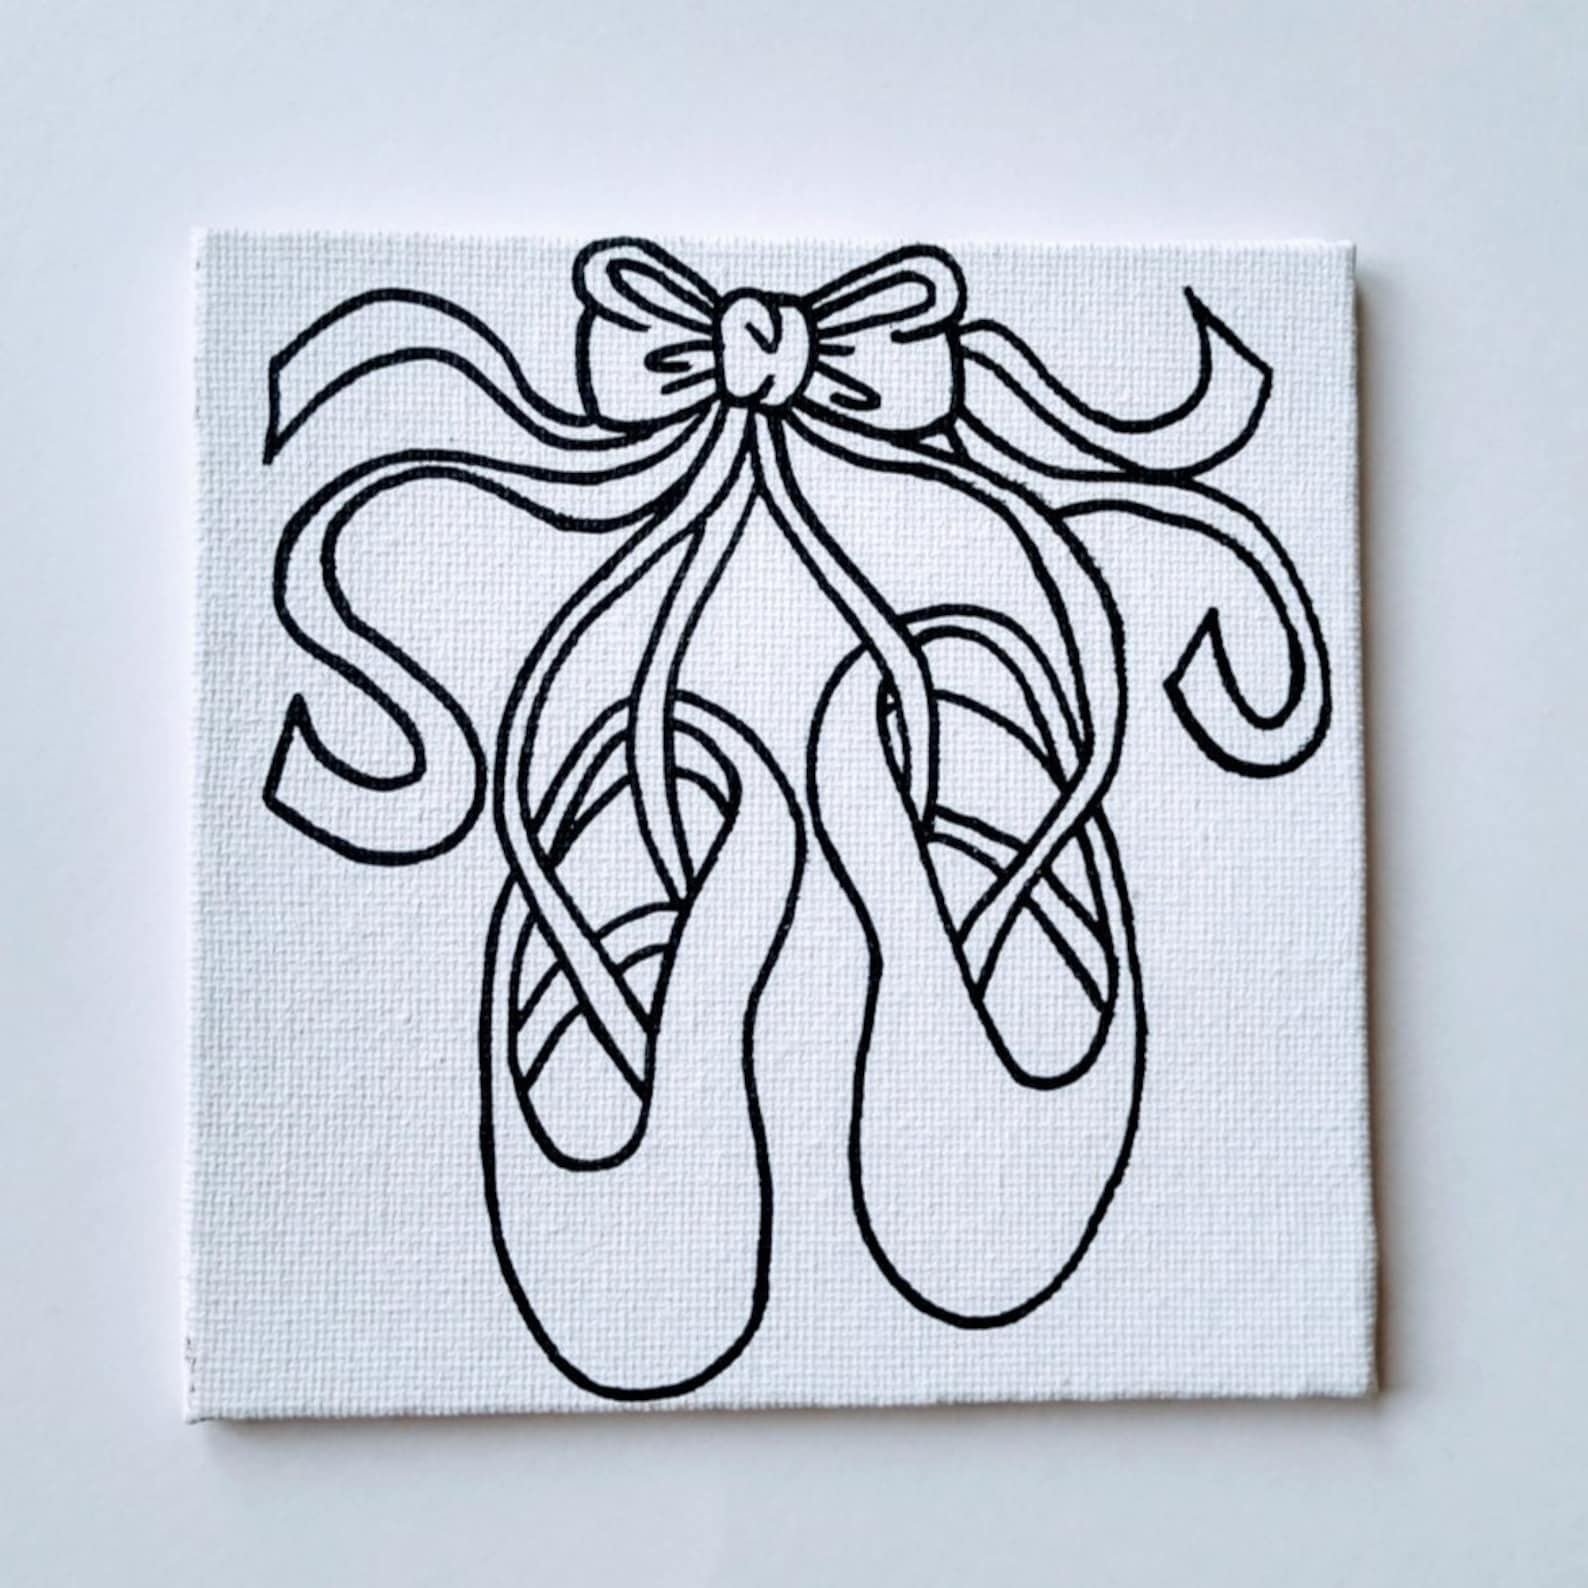 paint your own ballet shoes - dance recital gift - art party - kids party favors